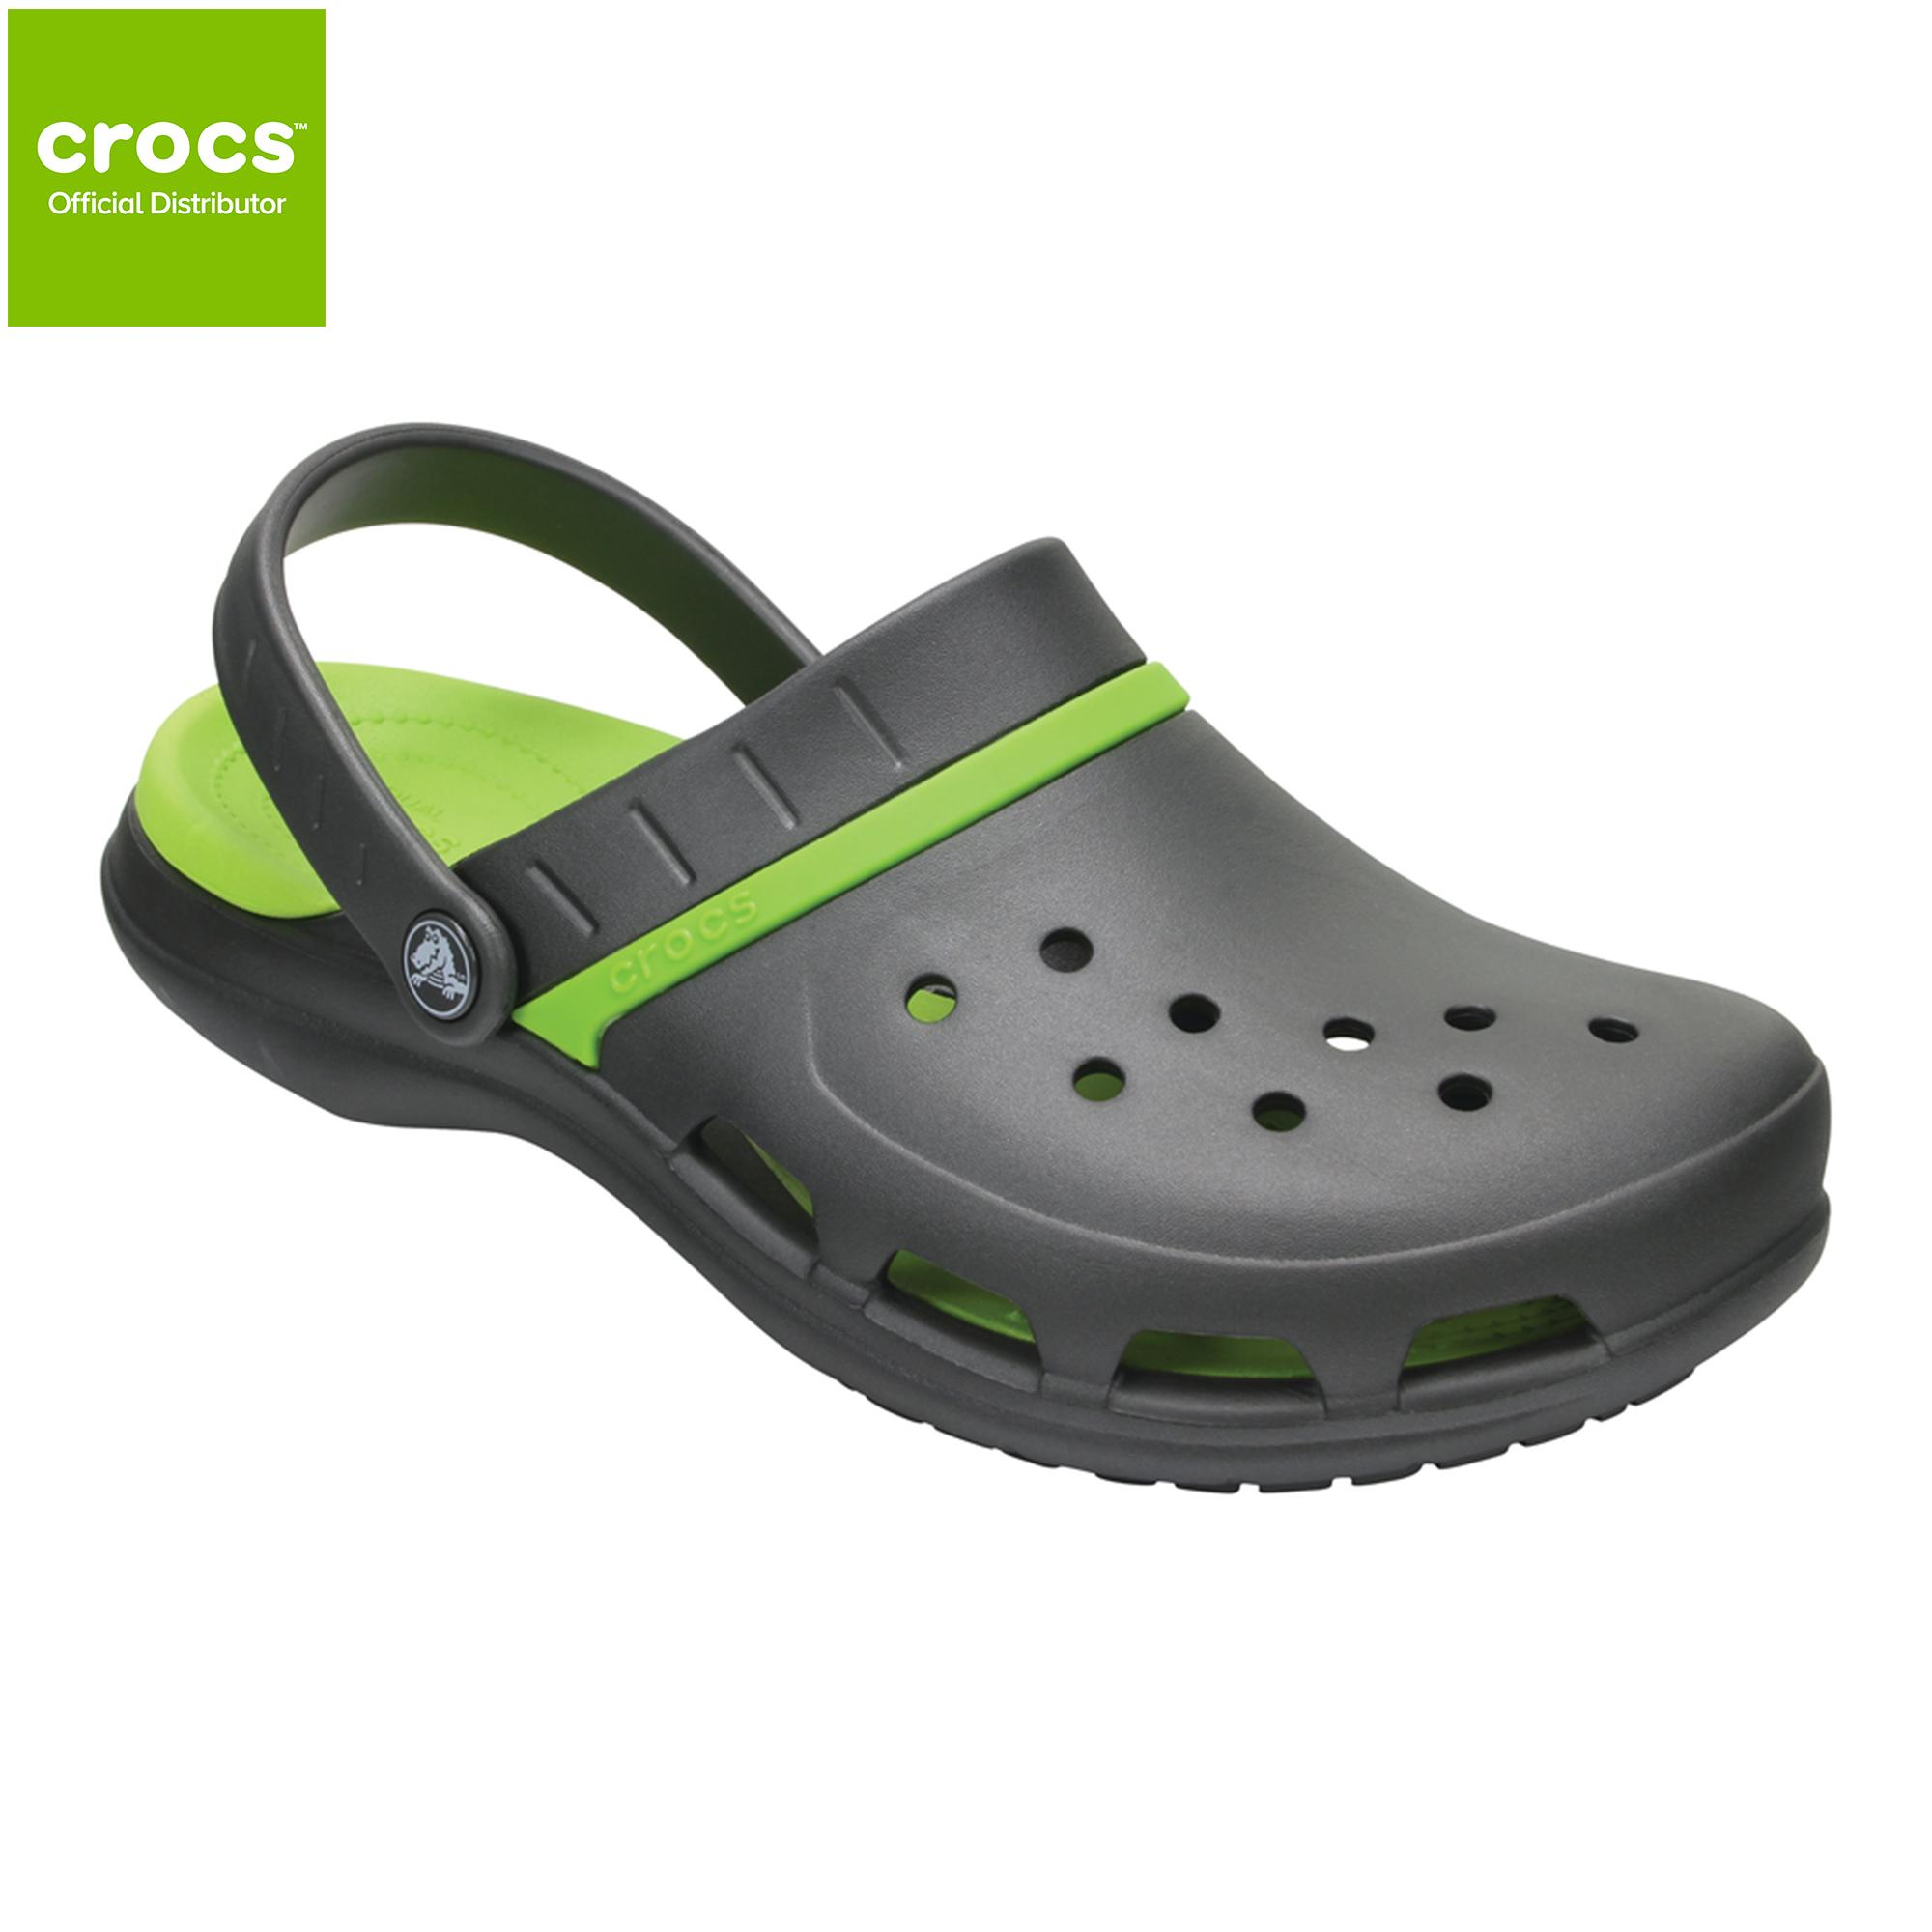 a7b6817b80d274 Crocs Philippines  Crocs price list - Crocs Flats